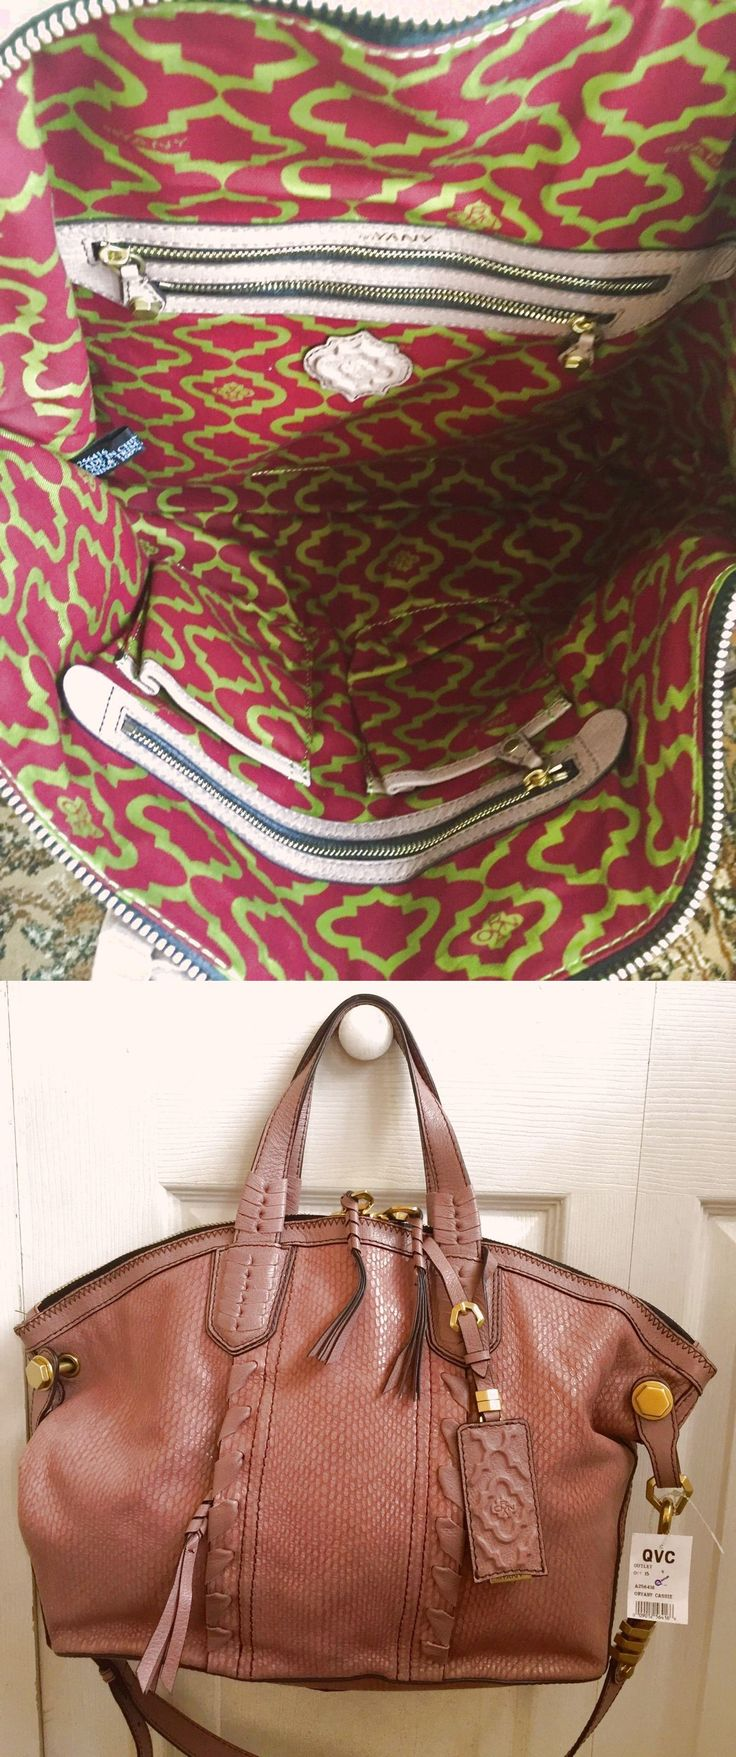 orYANY Cassie Matte Snake Leather Medium Tote $129.99